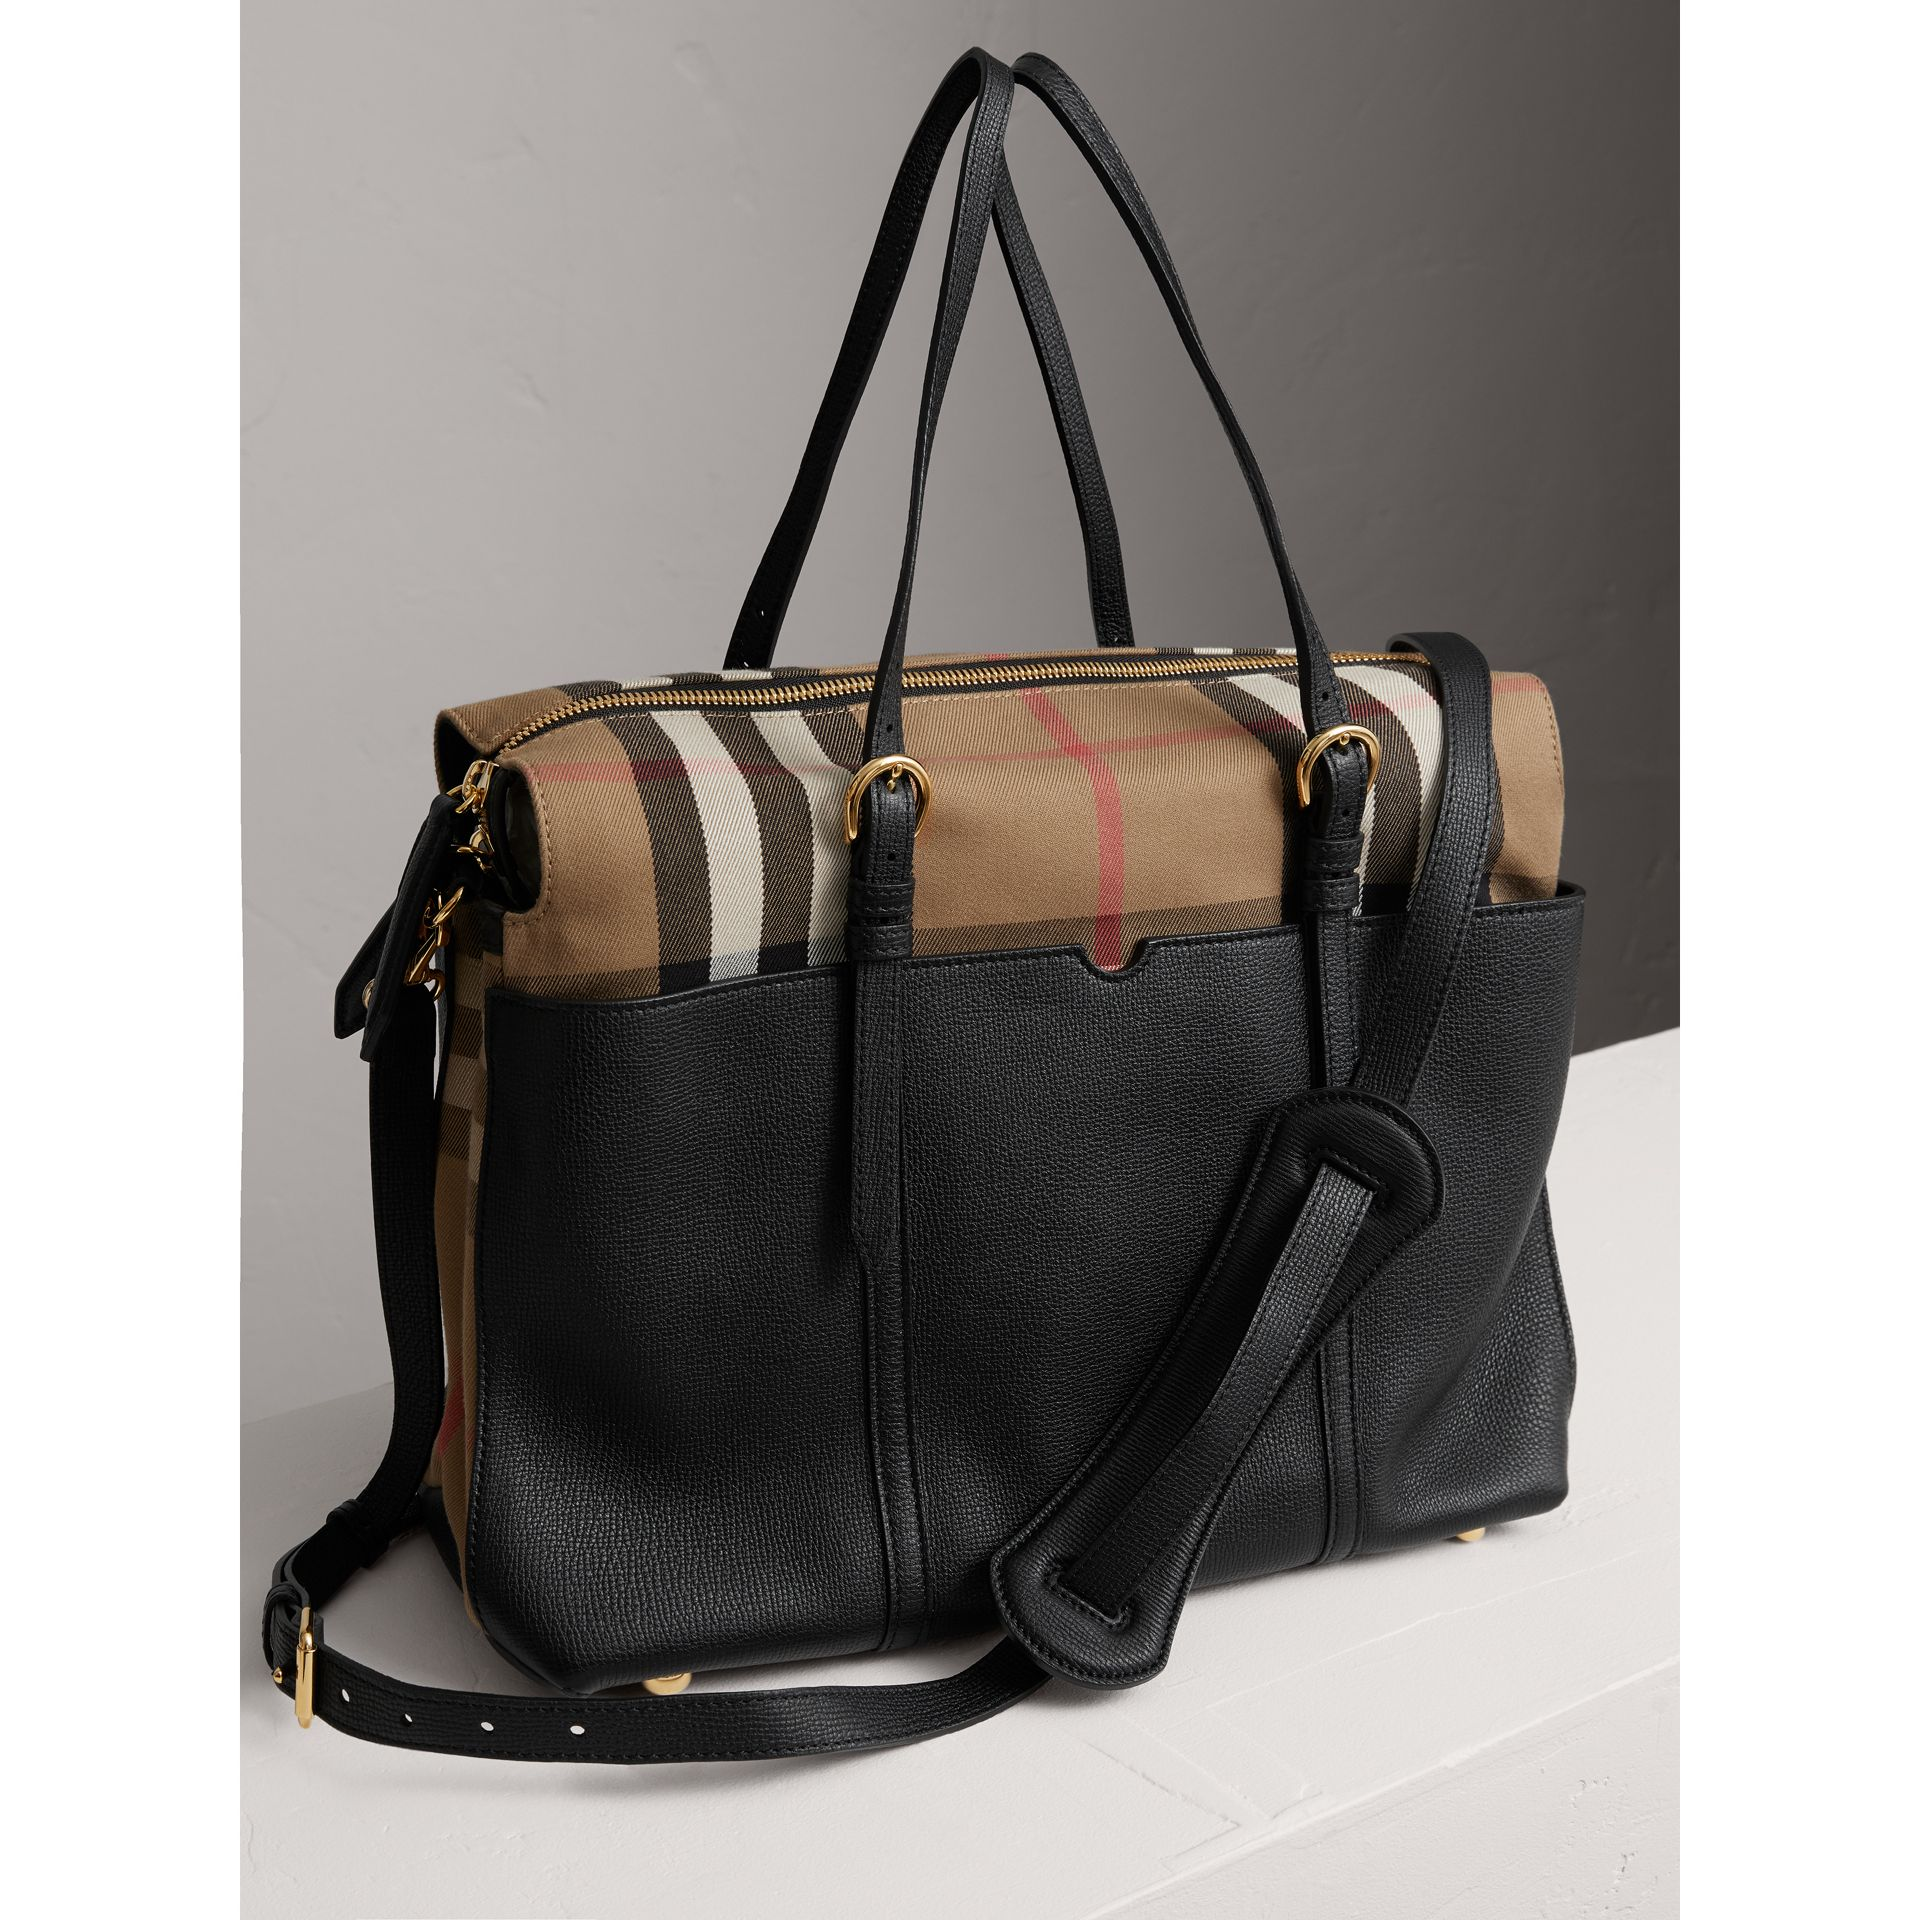 House Check and Leather Baby Changing Bag in Black | Burberry United States - gallery image 3